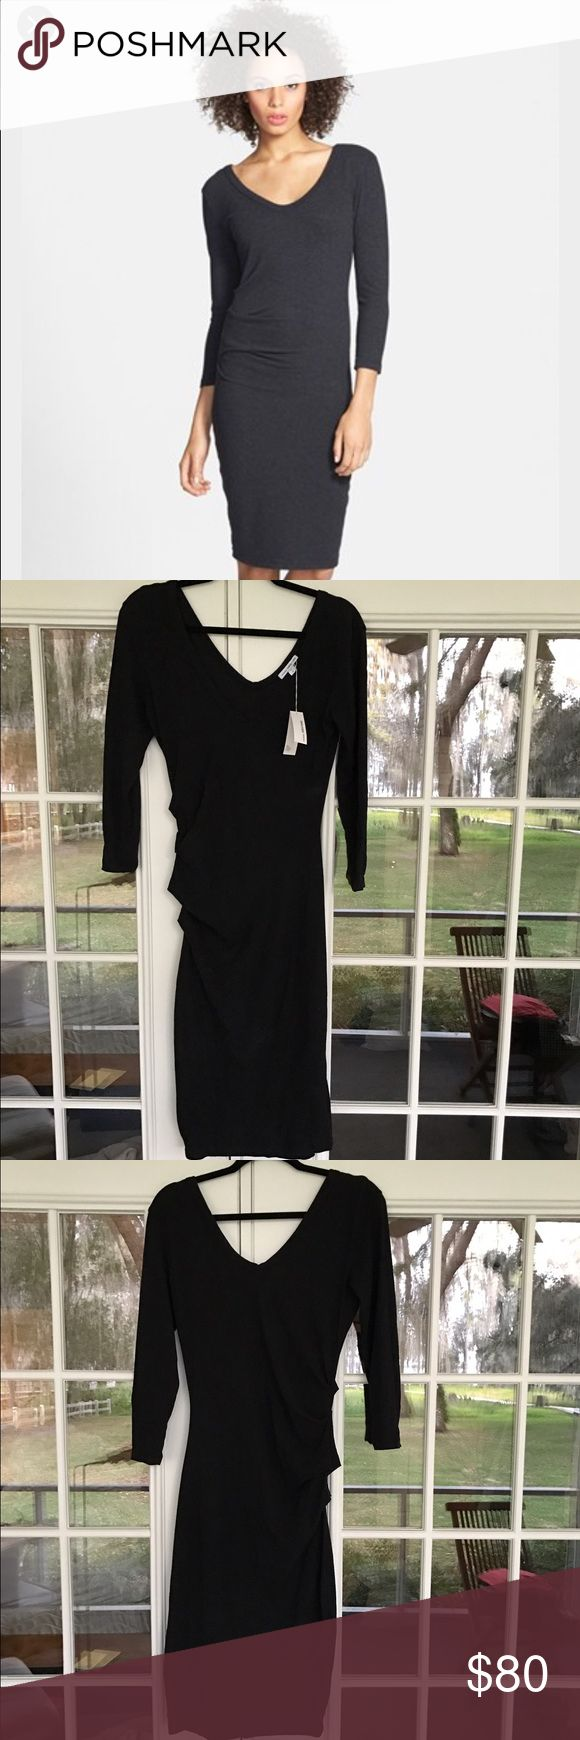 NWT James Perse Double V tucked dress - SZ 4(LRG) NWT James Perse Double V tucked dress - SZ 4(LRG) ; in black (color is actually a really dark charcoal grey) - purchased about a year ago and never wore it, can be dressed up or down and is VERY soft. James Perse Dresses Long Sleeve